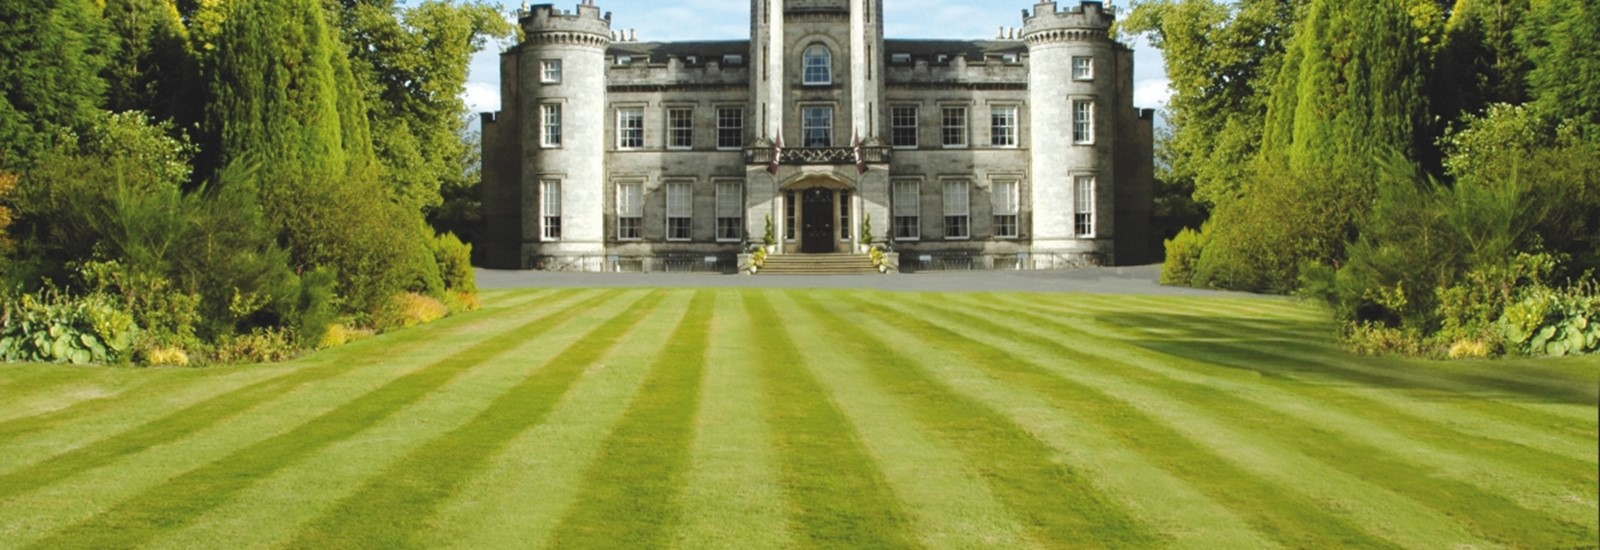 Airth Castle Hotel and Spa, Airth|Hotels in Falkirk